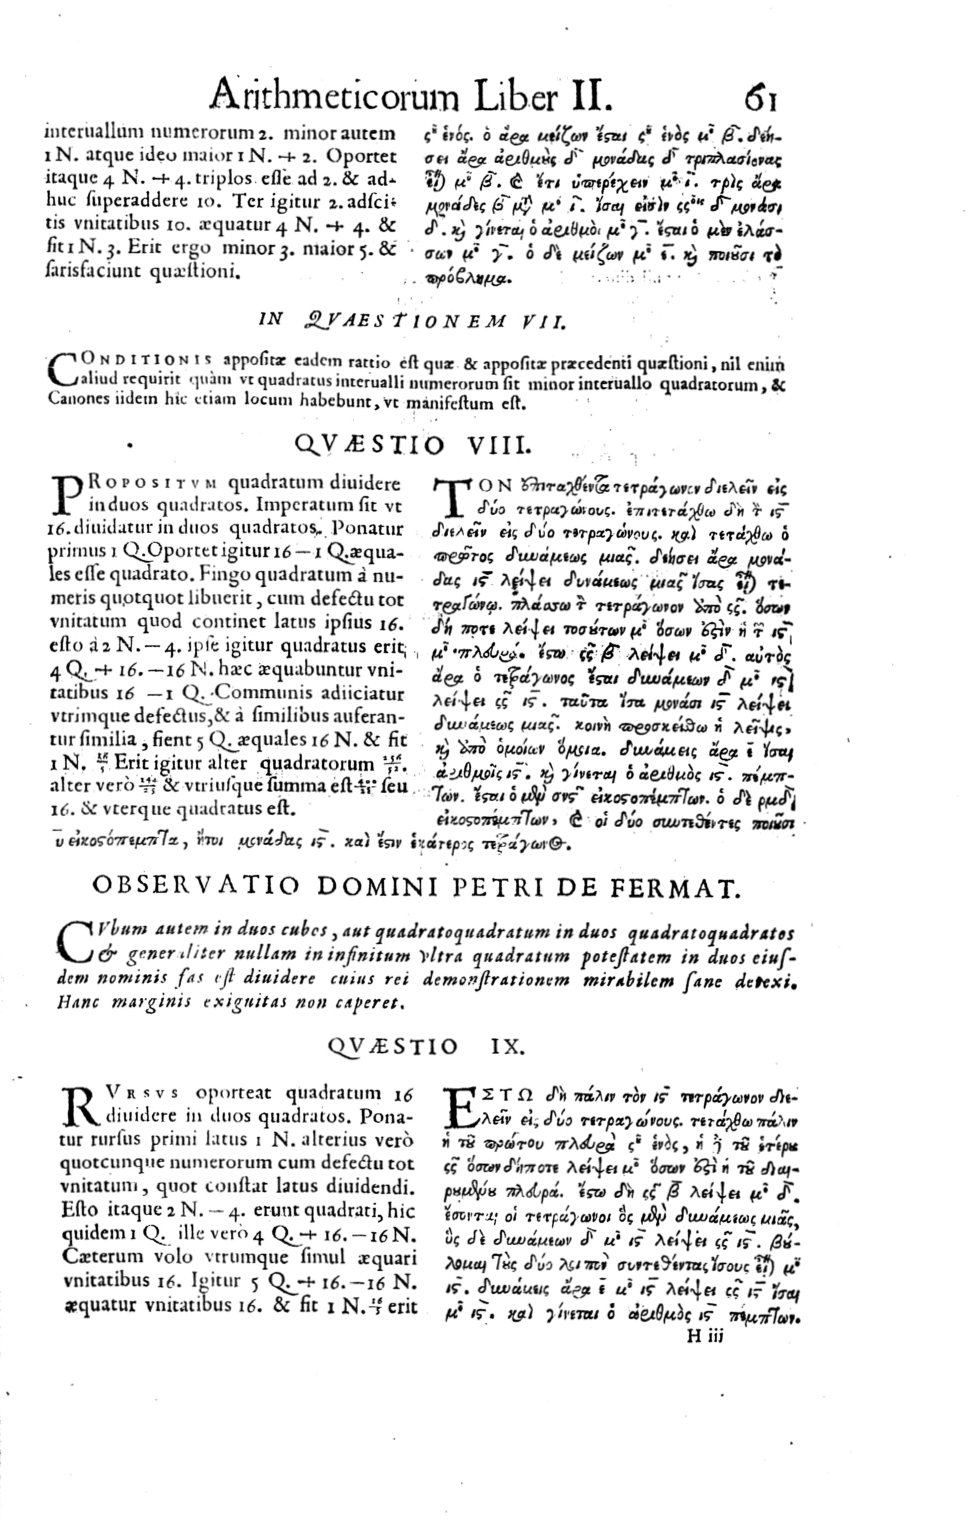 history of algebra writework problem ii 8 in the arithmetica edition of 1670 annotated fermat s